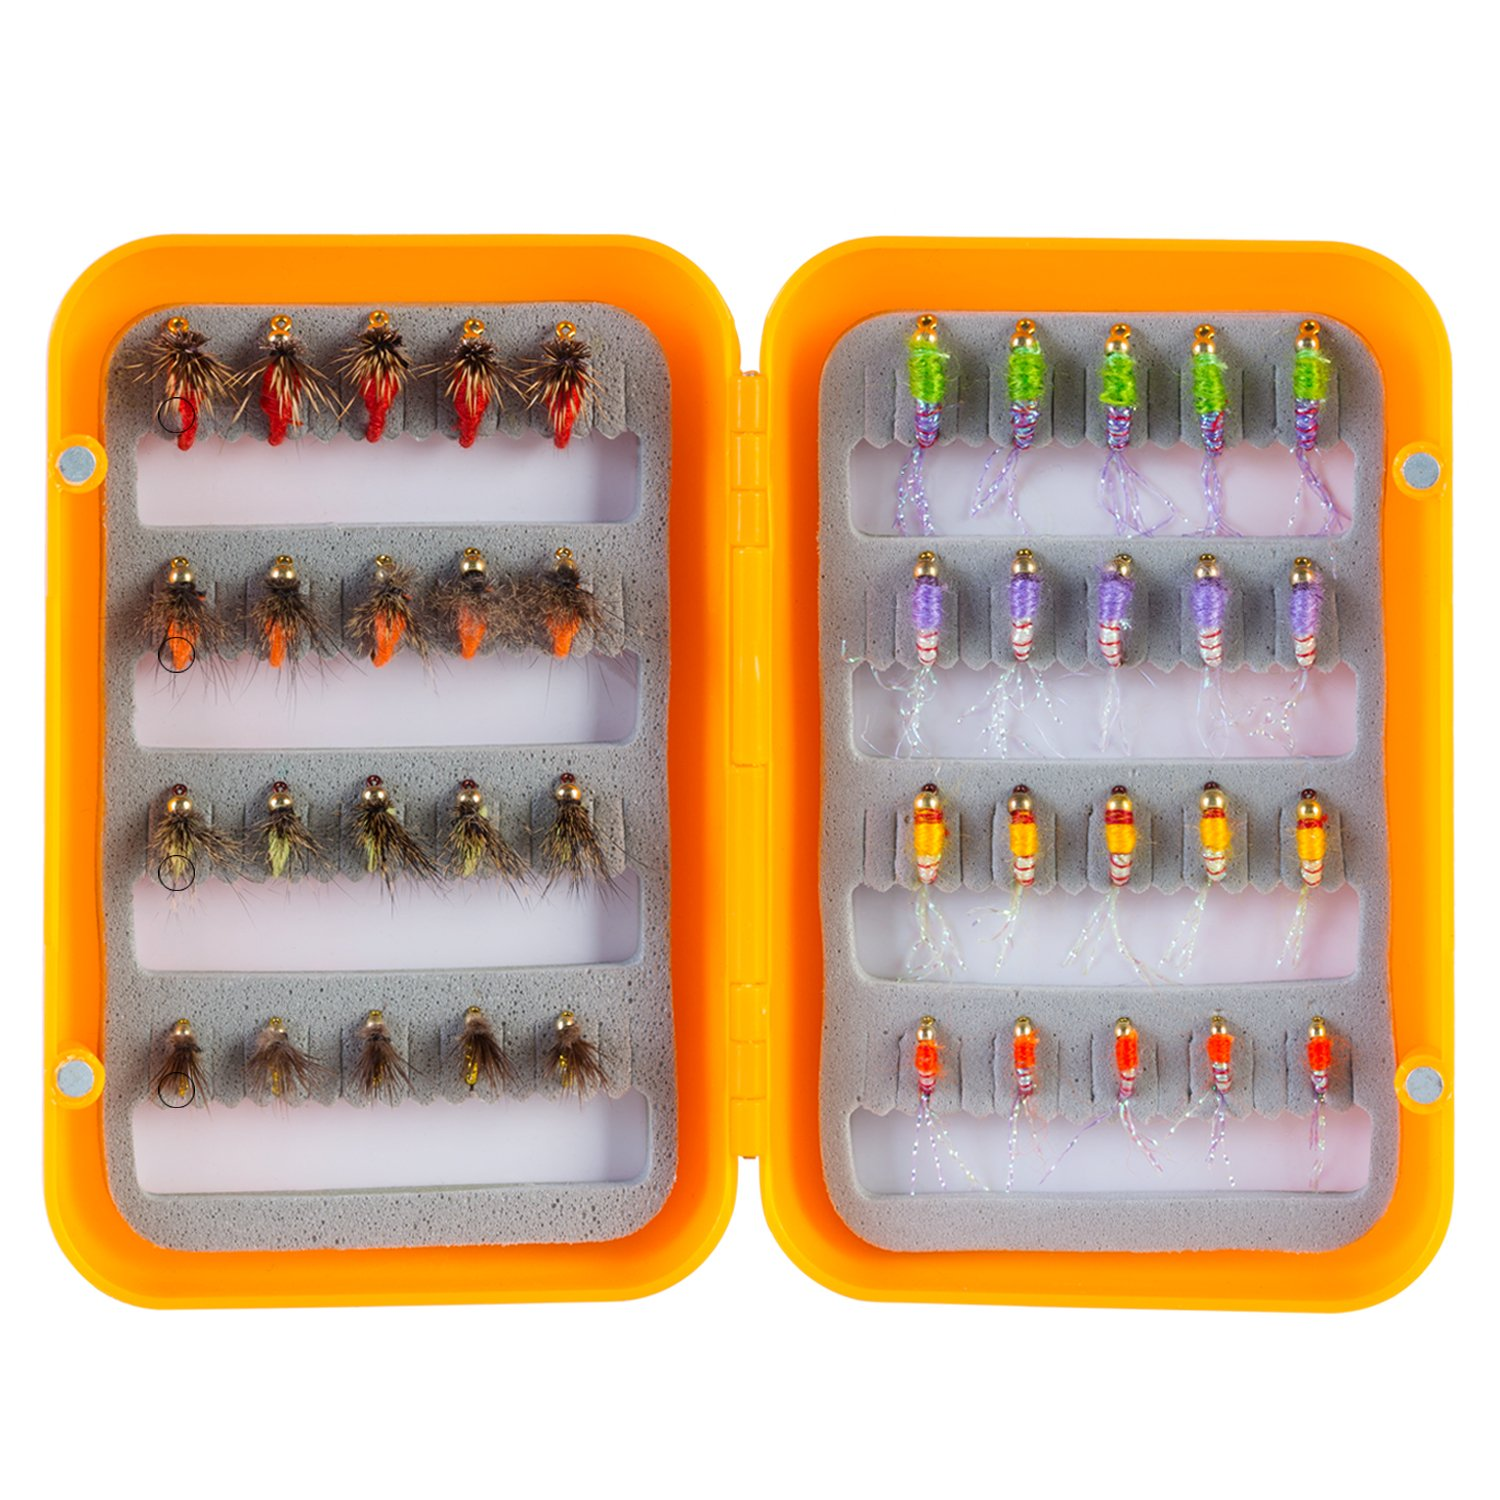 Piscifun 40pcs Wet Flies Fly Fishing Lures Bass Salmon Trouts Sinking Flies Assortment with Fly Box 8#,10#,12#,14# Hook